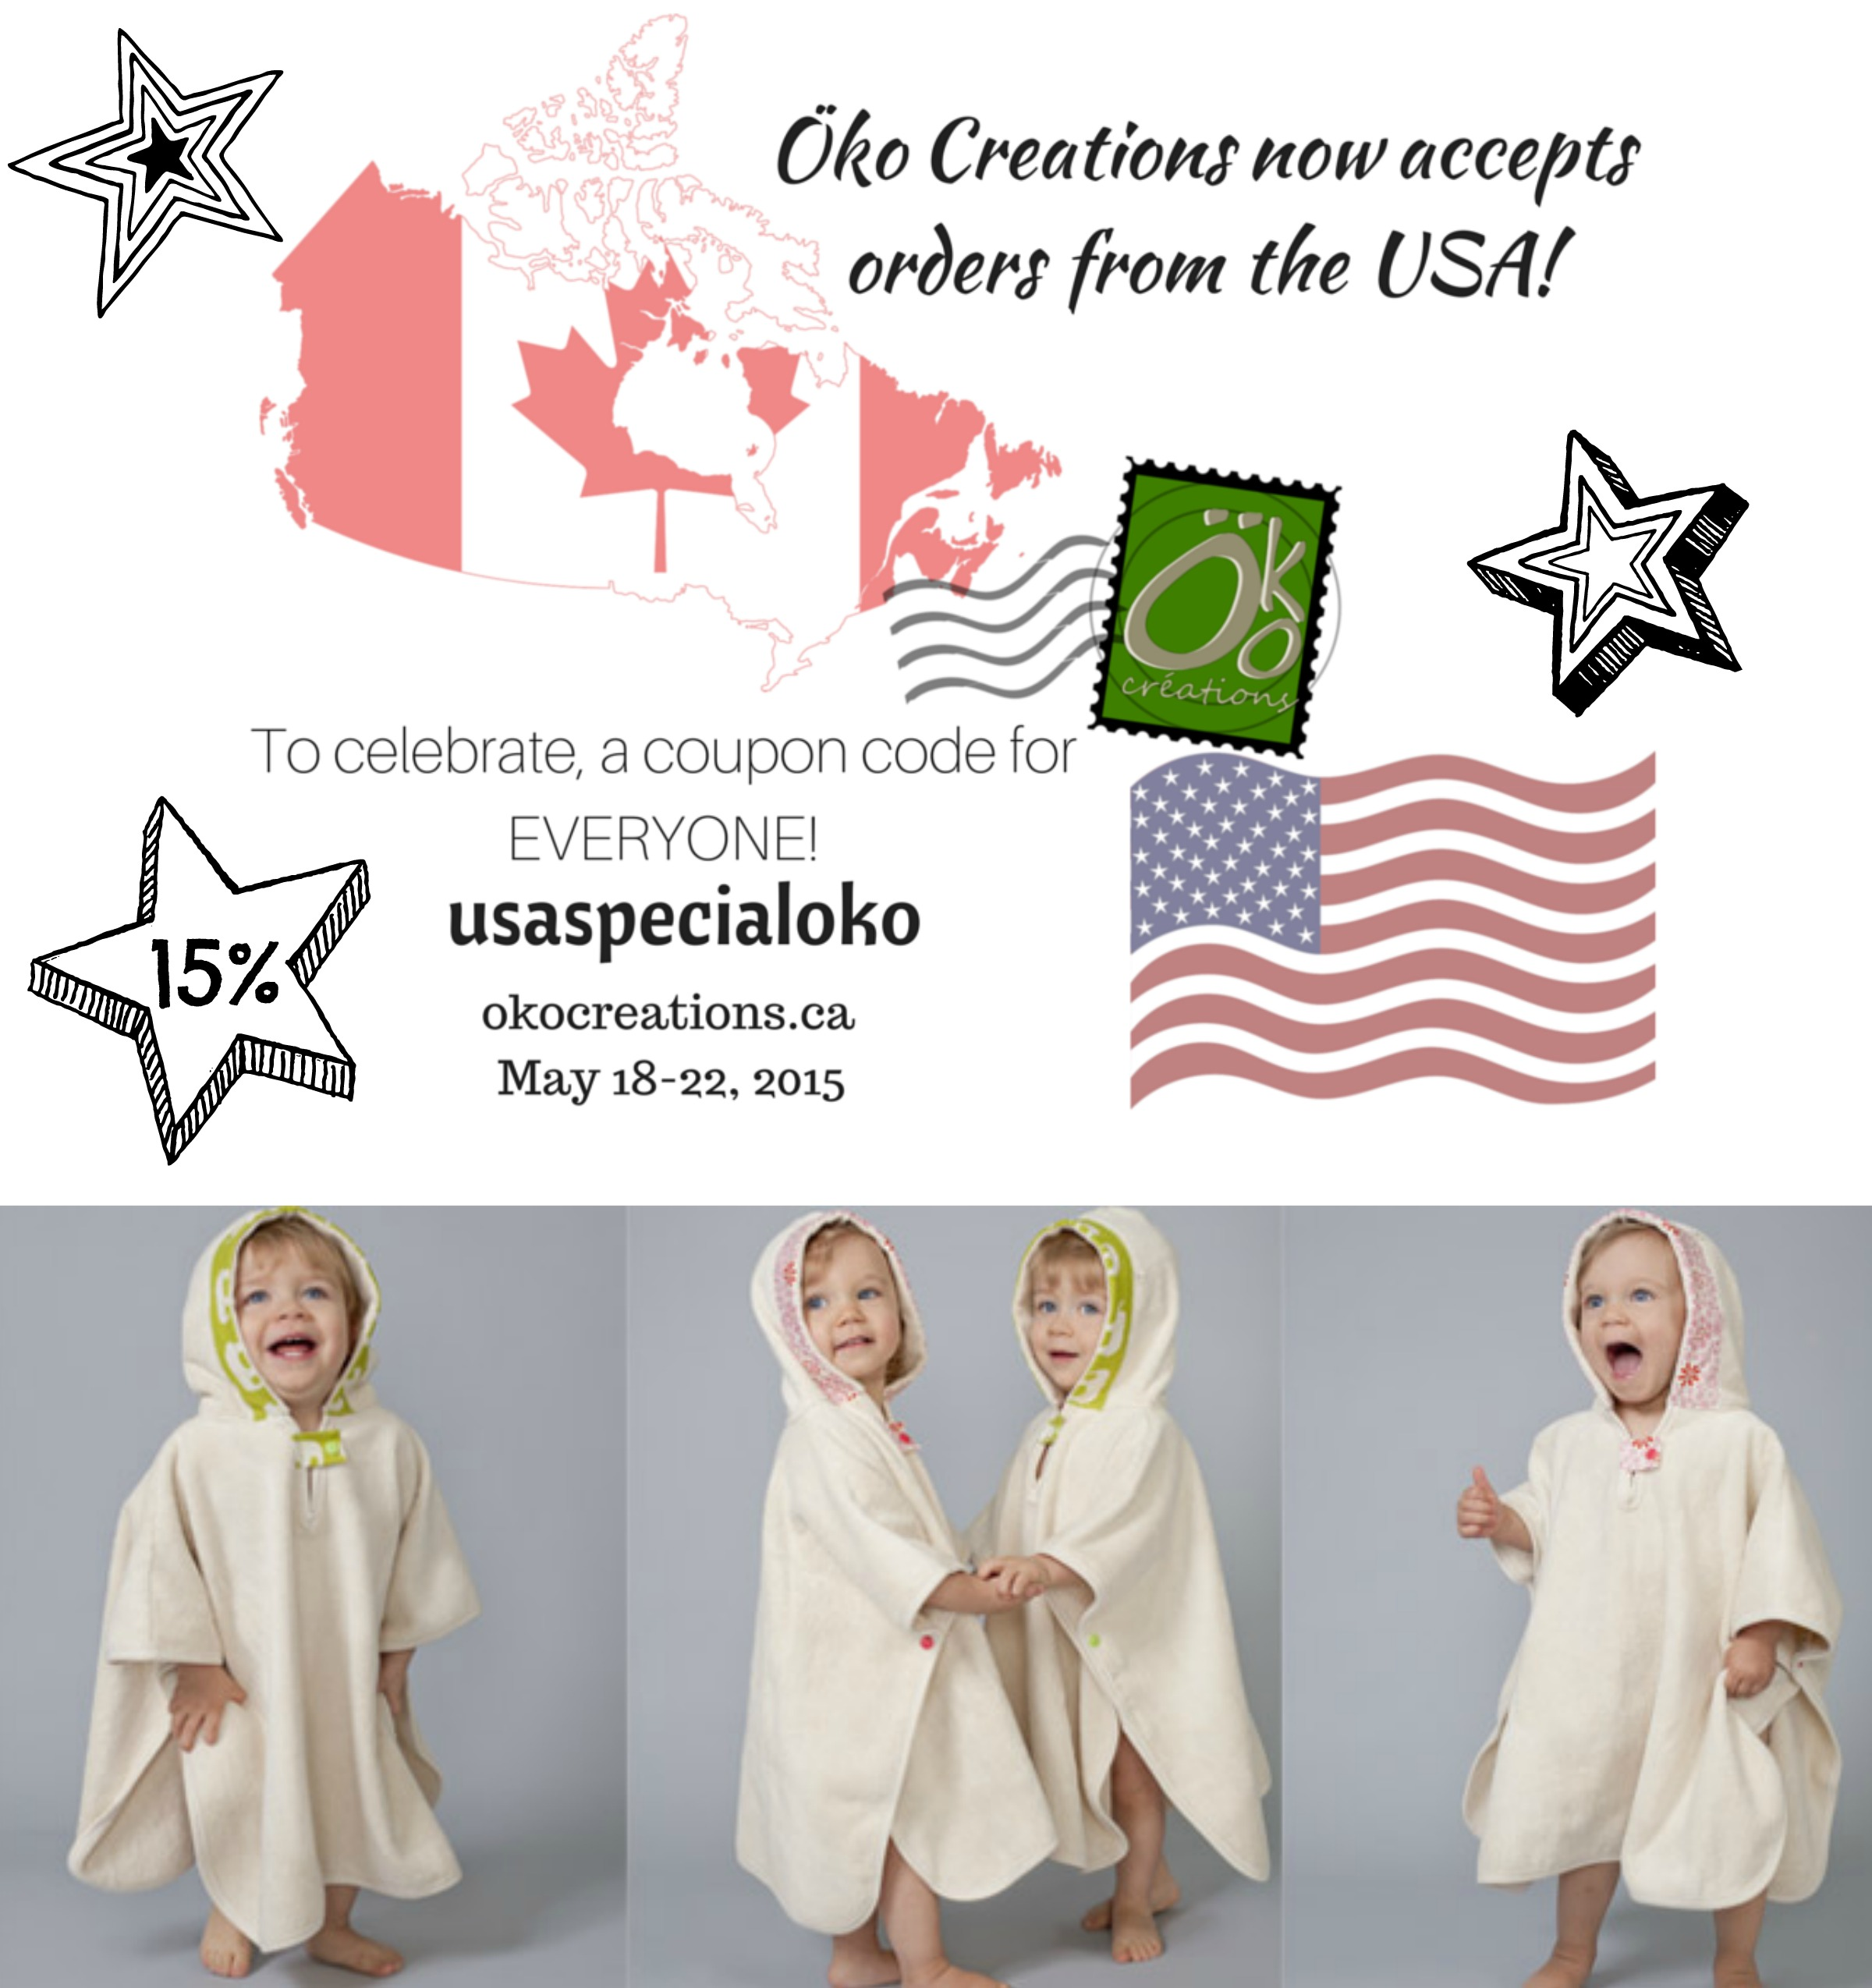 Öko Creations now accepts orders from the USA